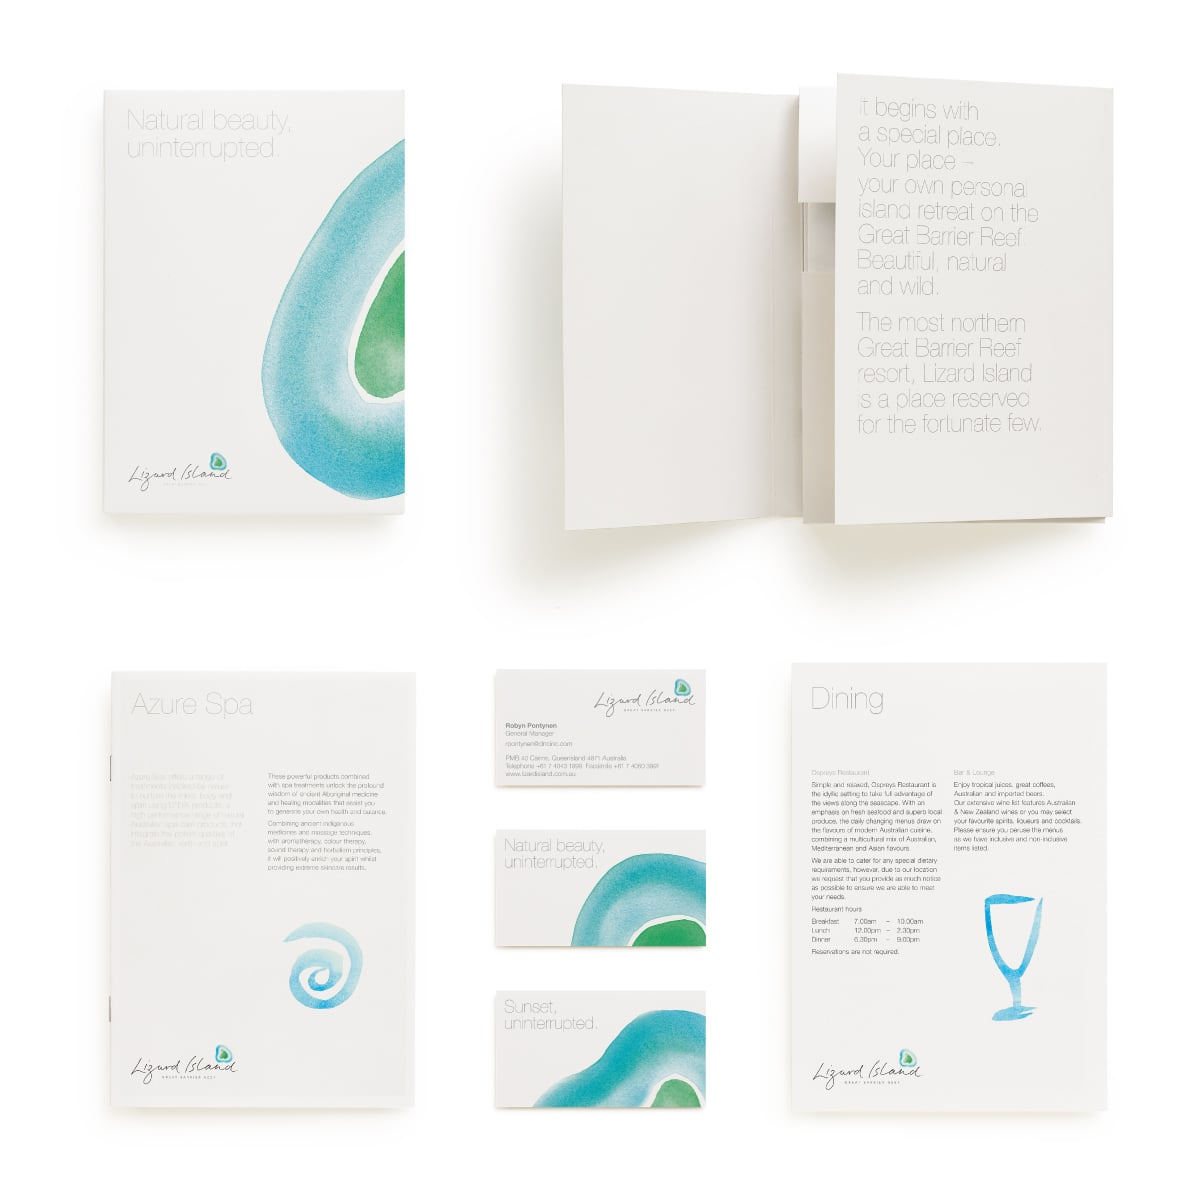 Davidson Branding Corporate Lizard Island Brand Identity Logo Design Water Wildlife Watercolour Stationery